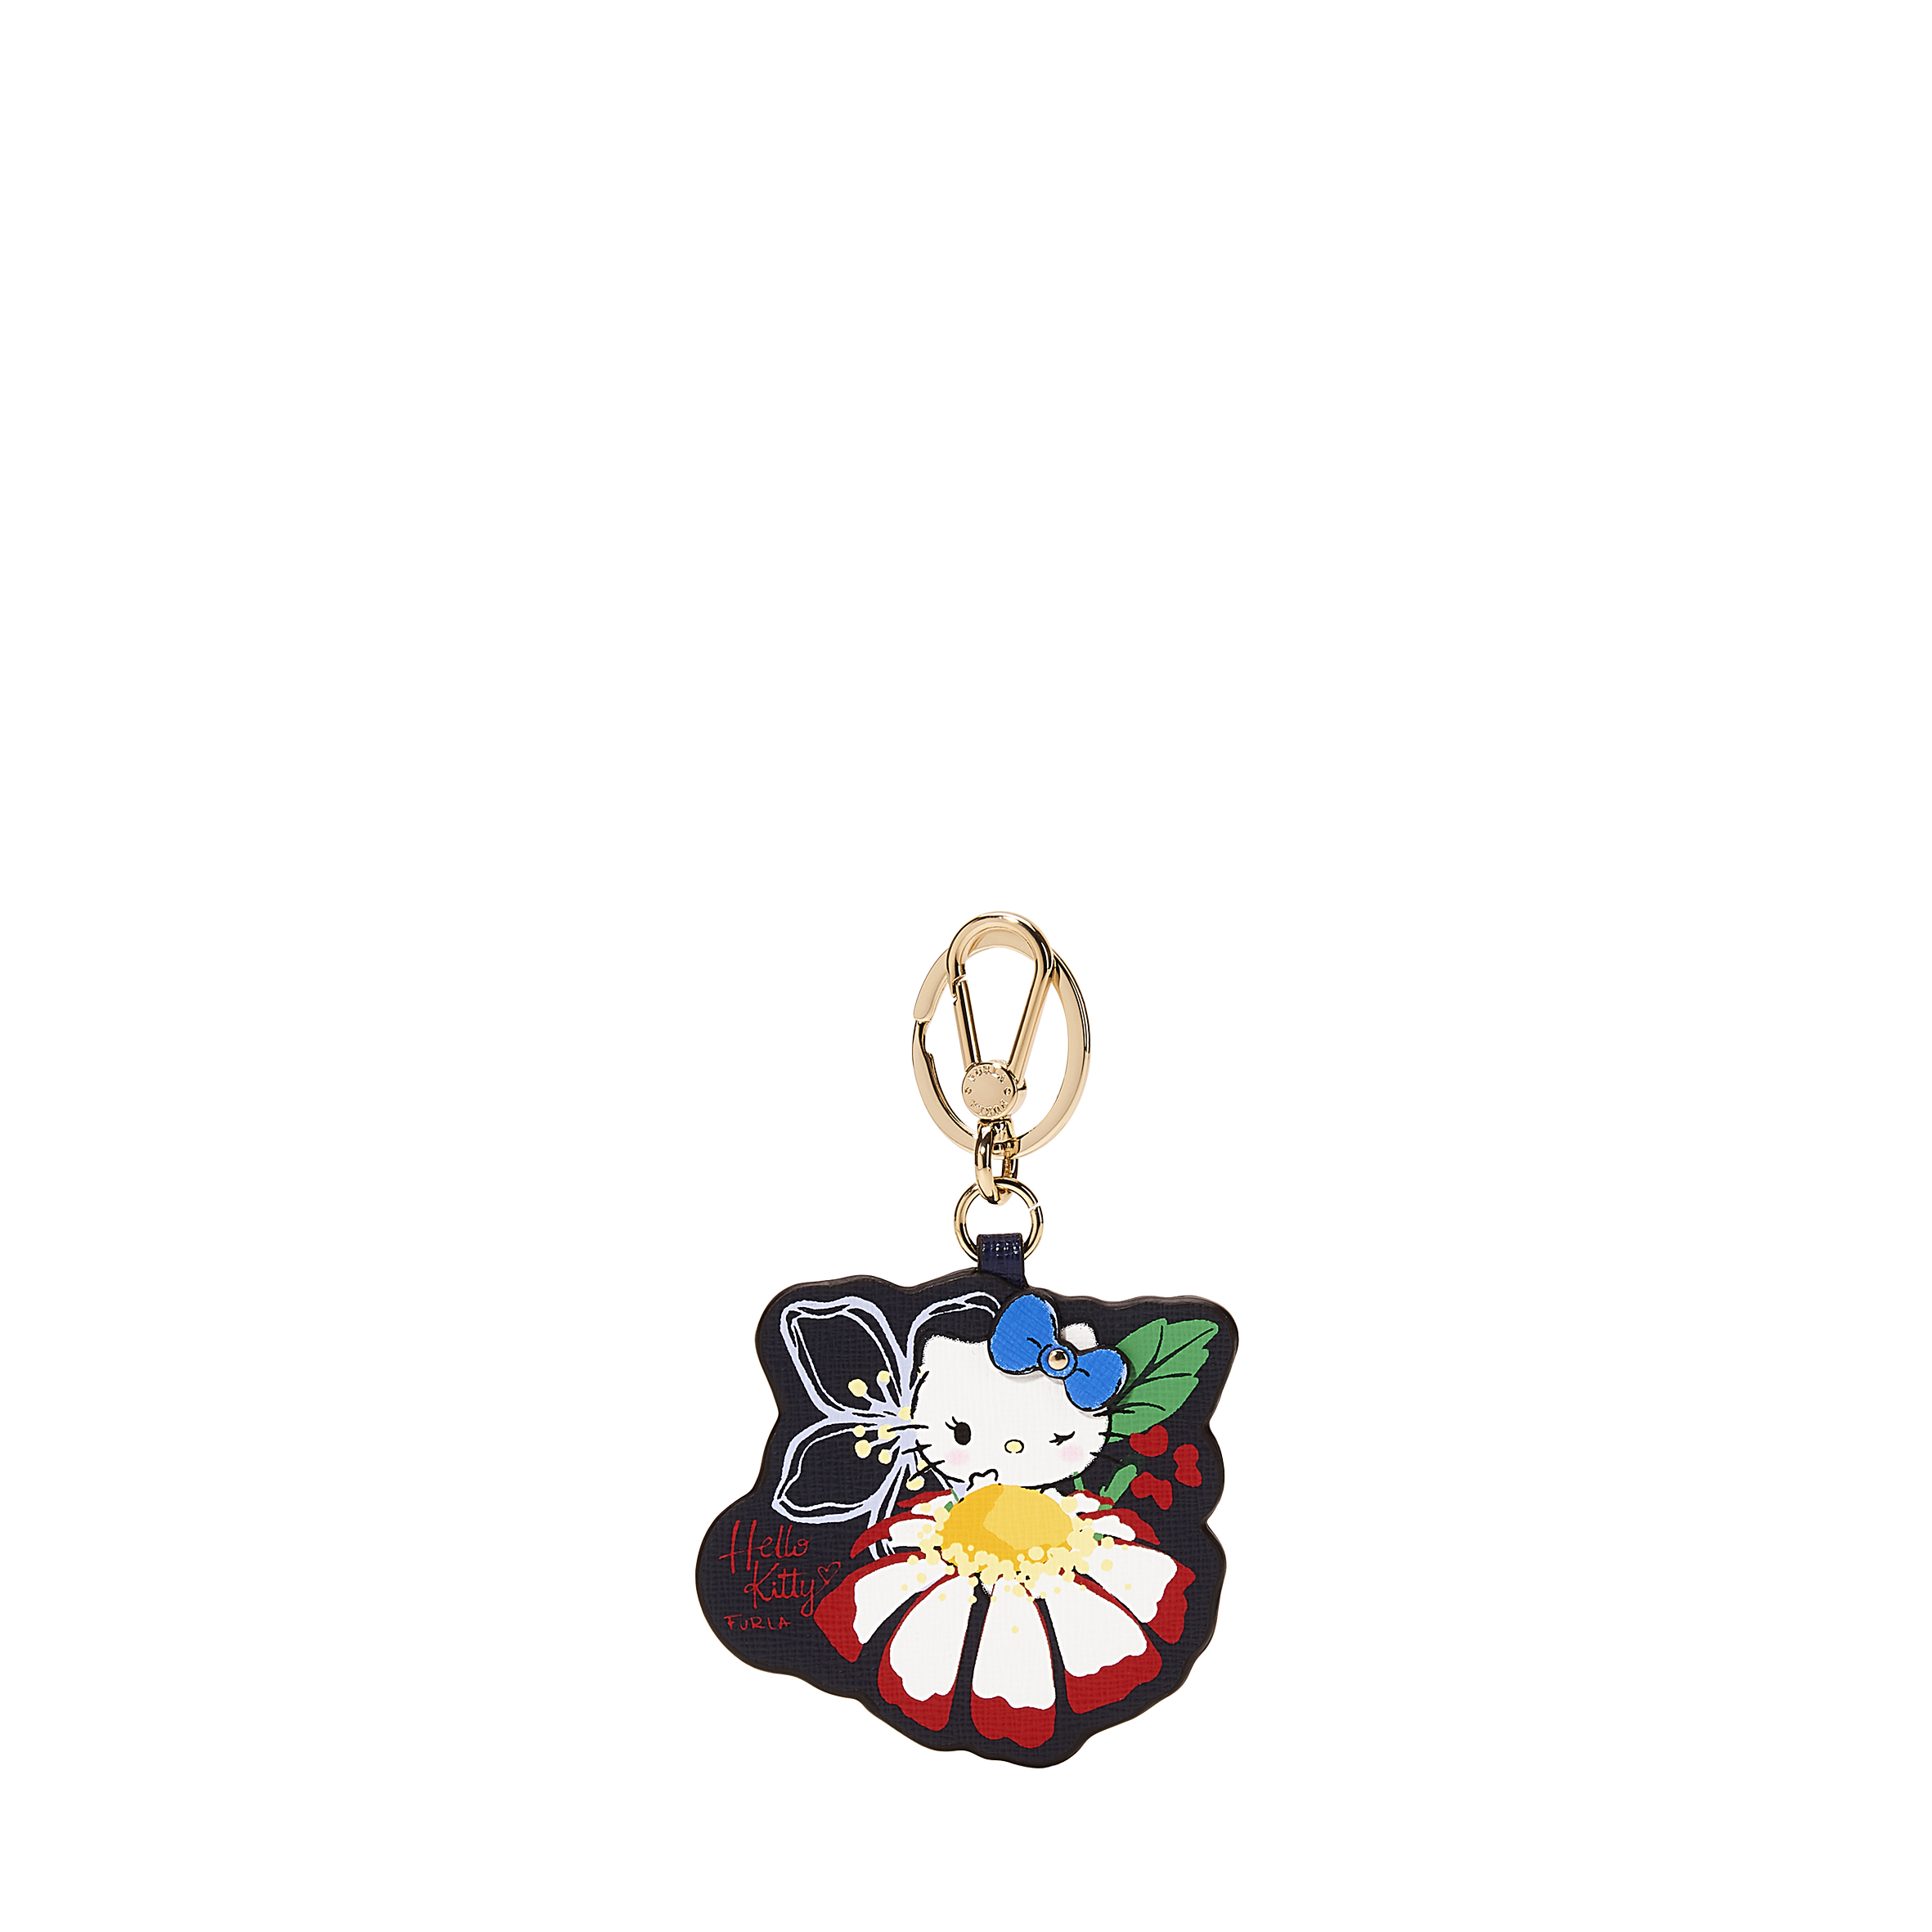 953531_RR22_KITTY KEYRING_ BLUE_PICCOLO